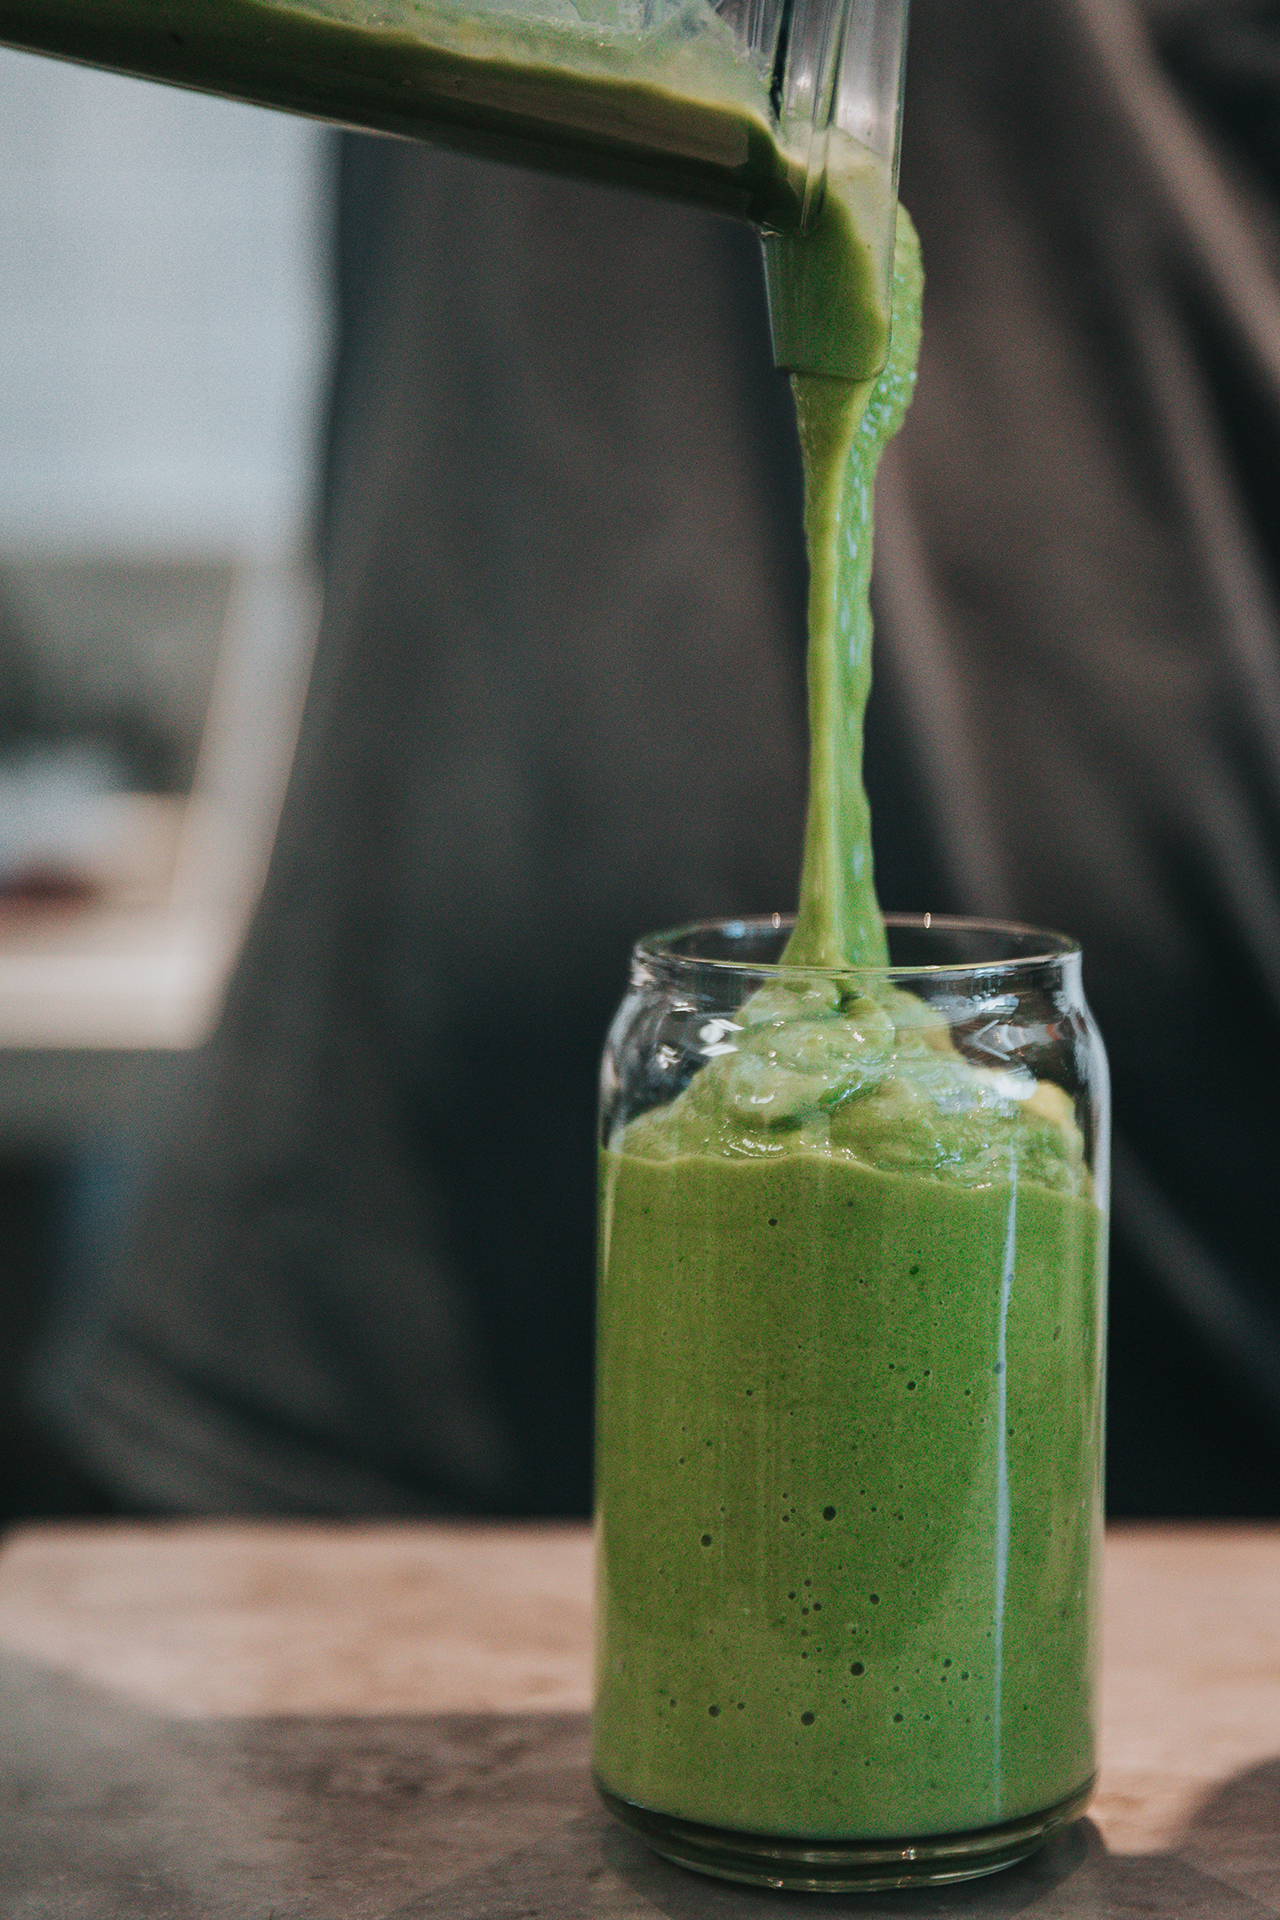 Green sunshine smoothie recipe from Rosette Fair Trade (pouring)